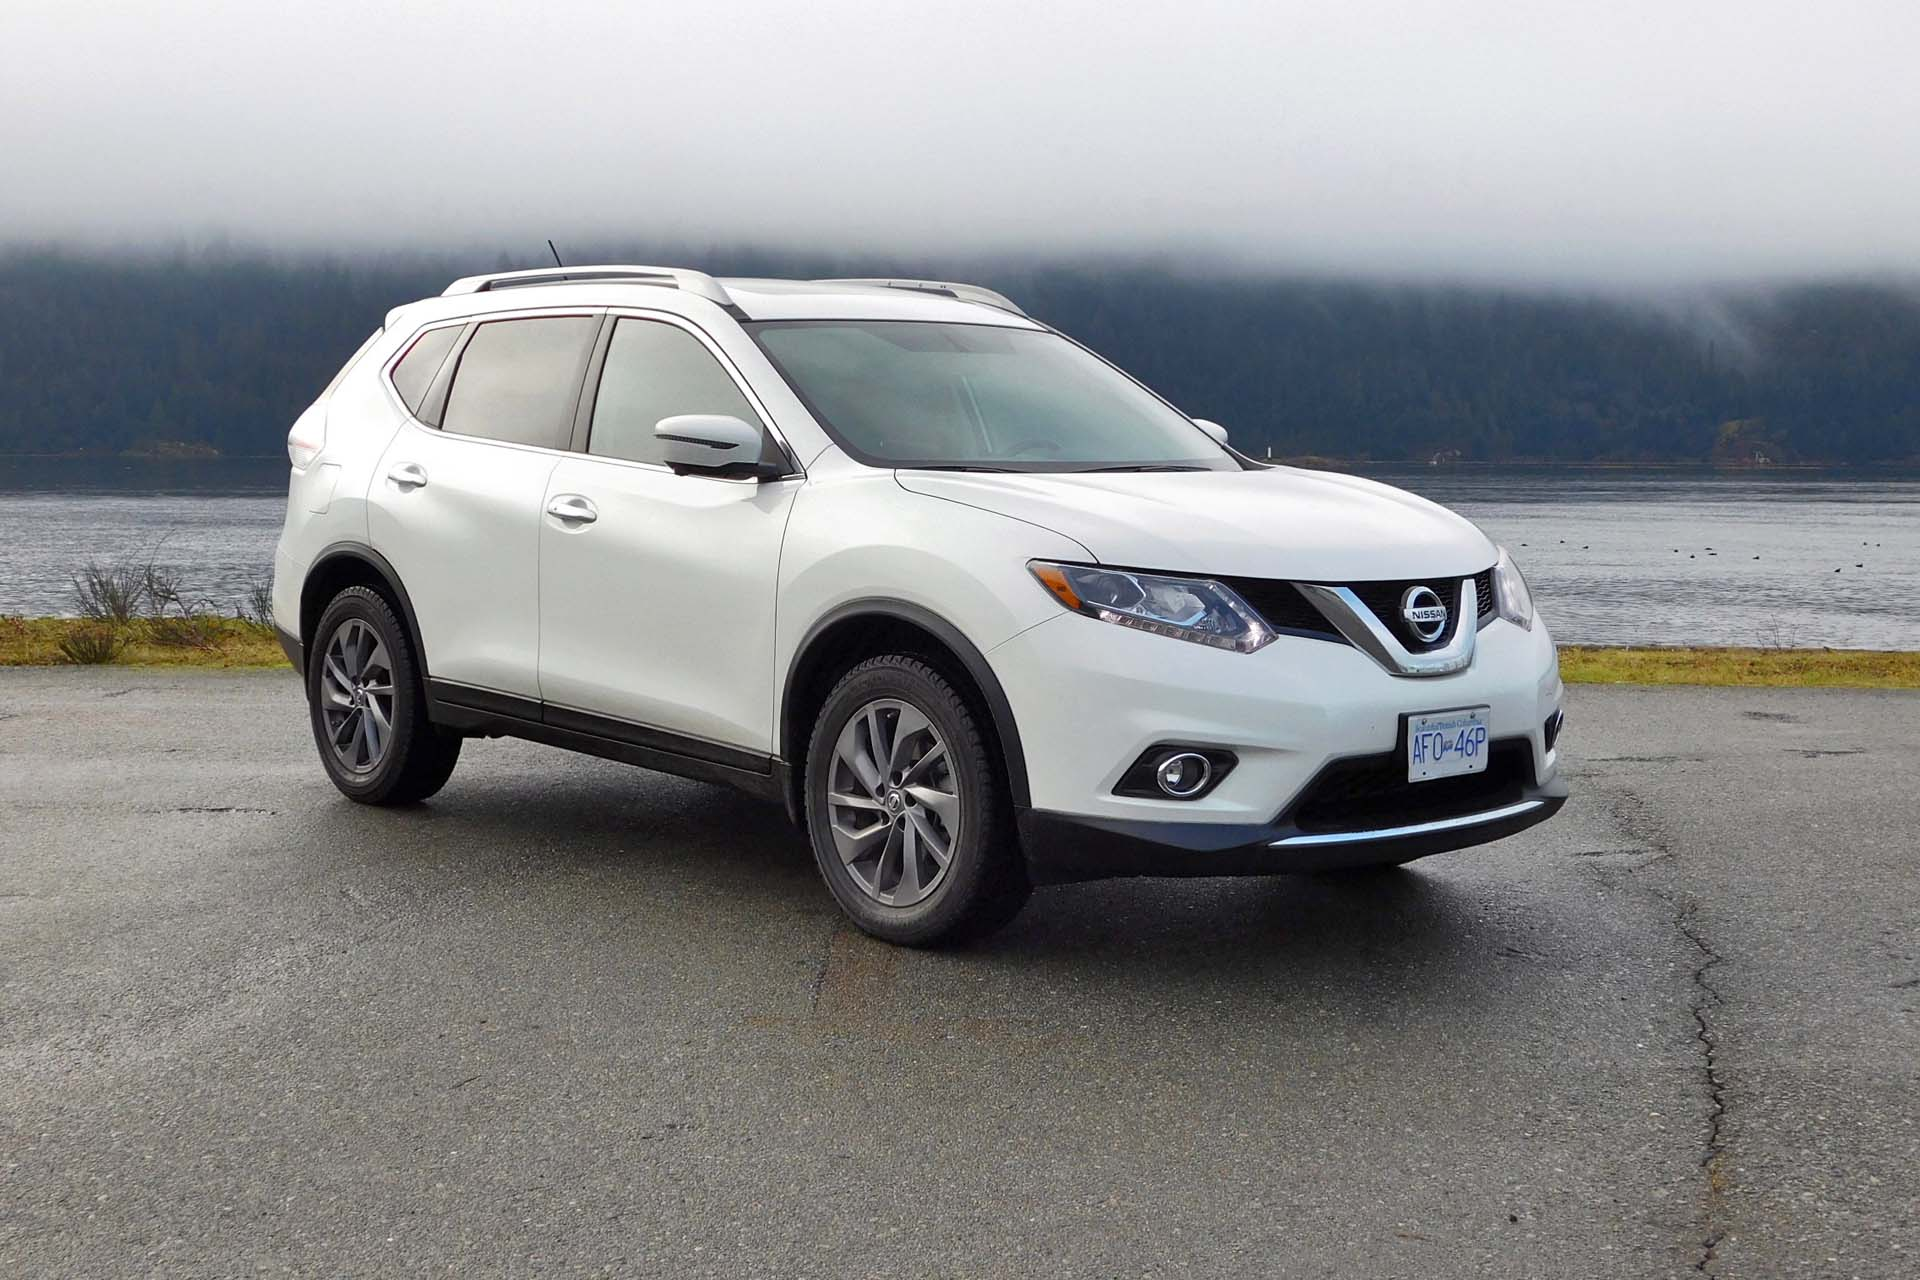 2016 nissan rogue price trims options specs photos reviews. Black Bedroom Furniture Sets. Home Design Ideas